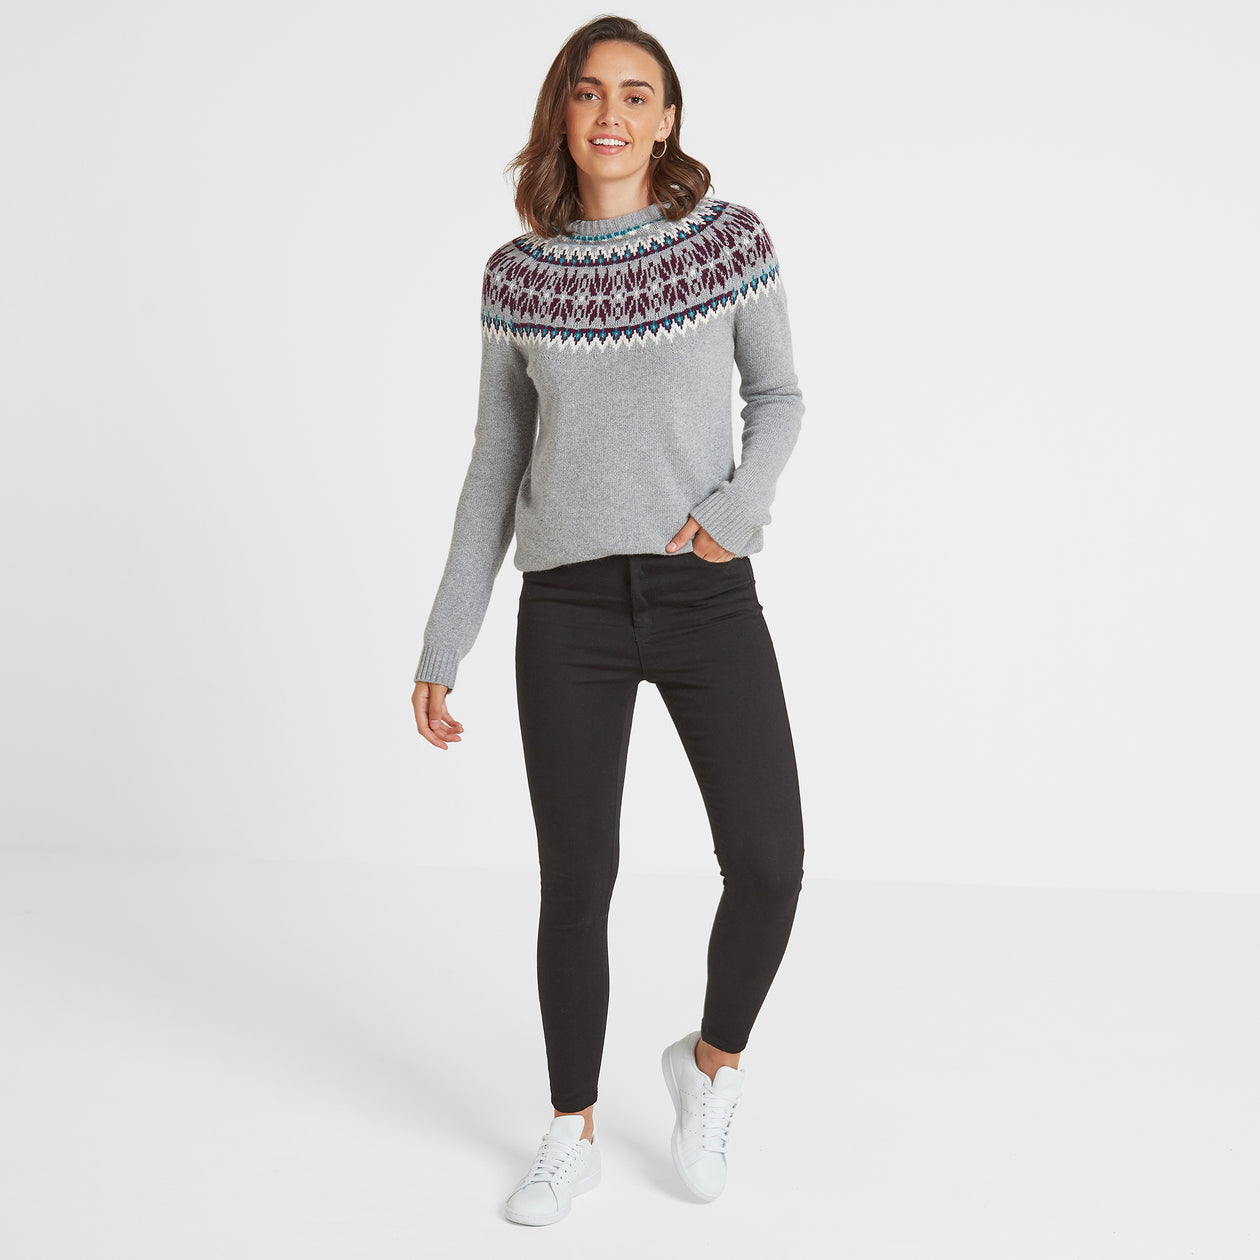 Laurie Womens Fairisle/Pattern Jumper - Light Grey Marl image 4